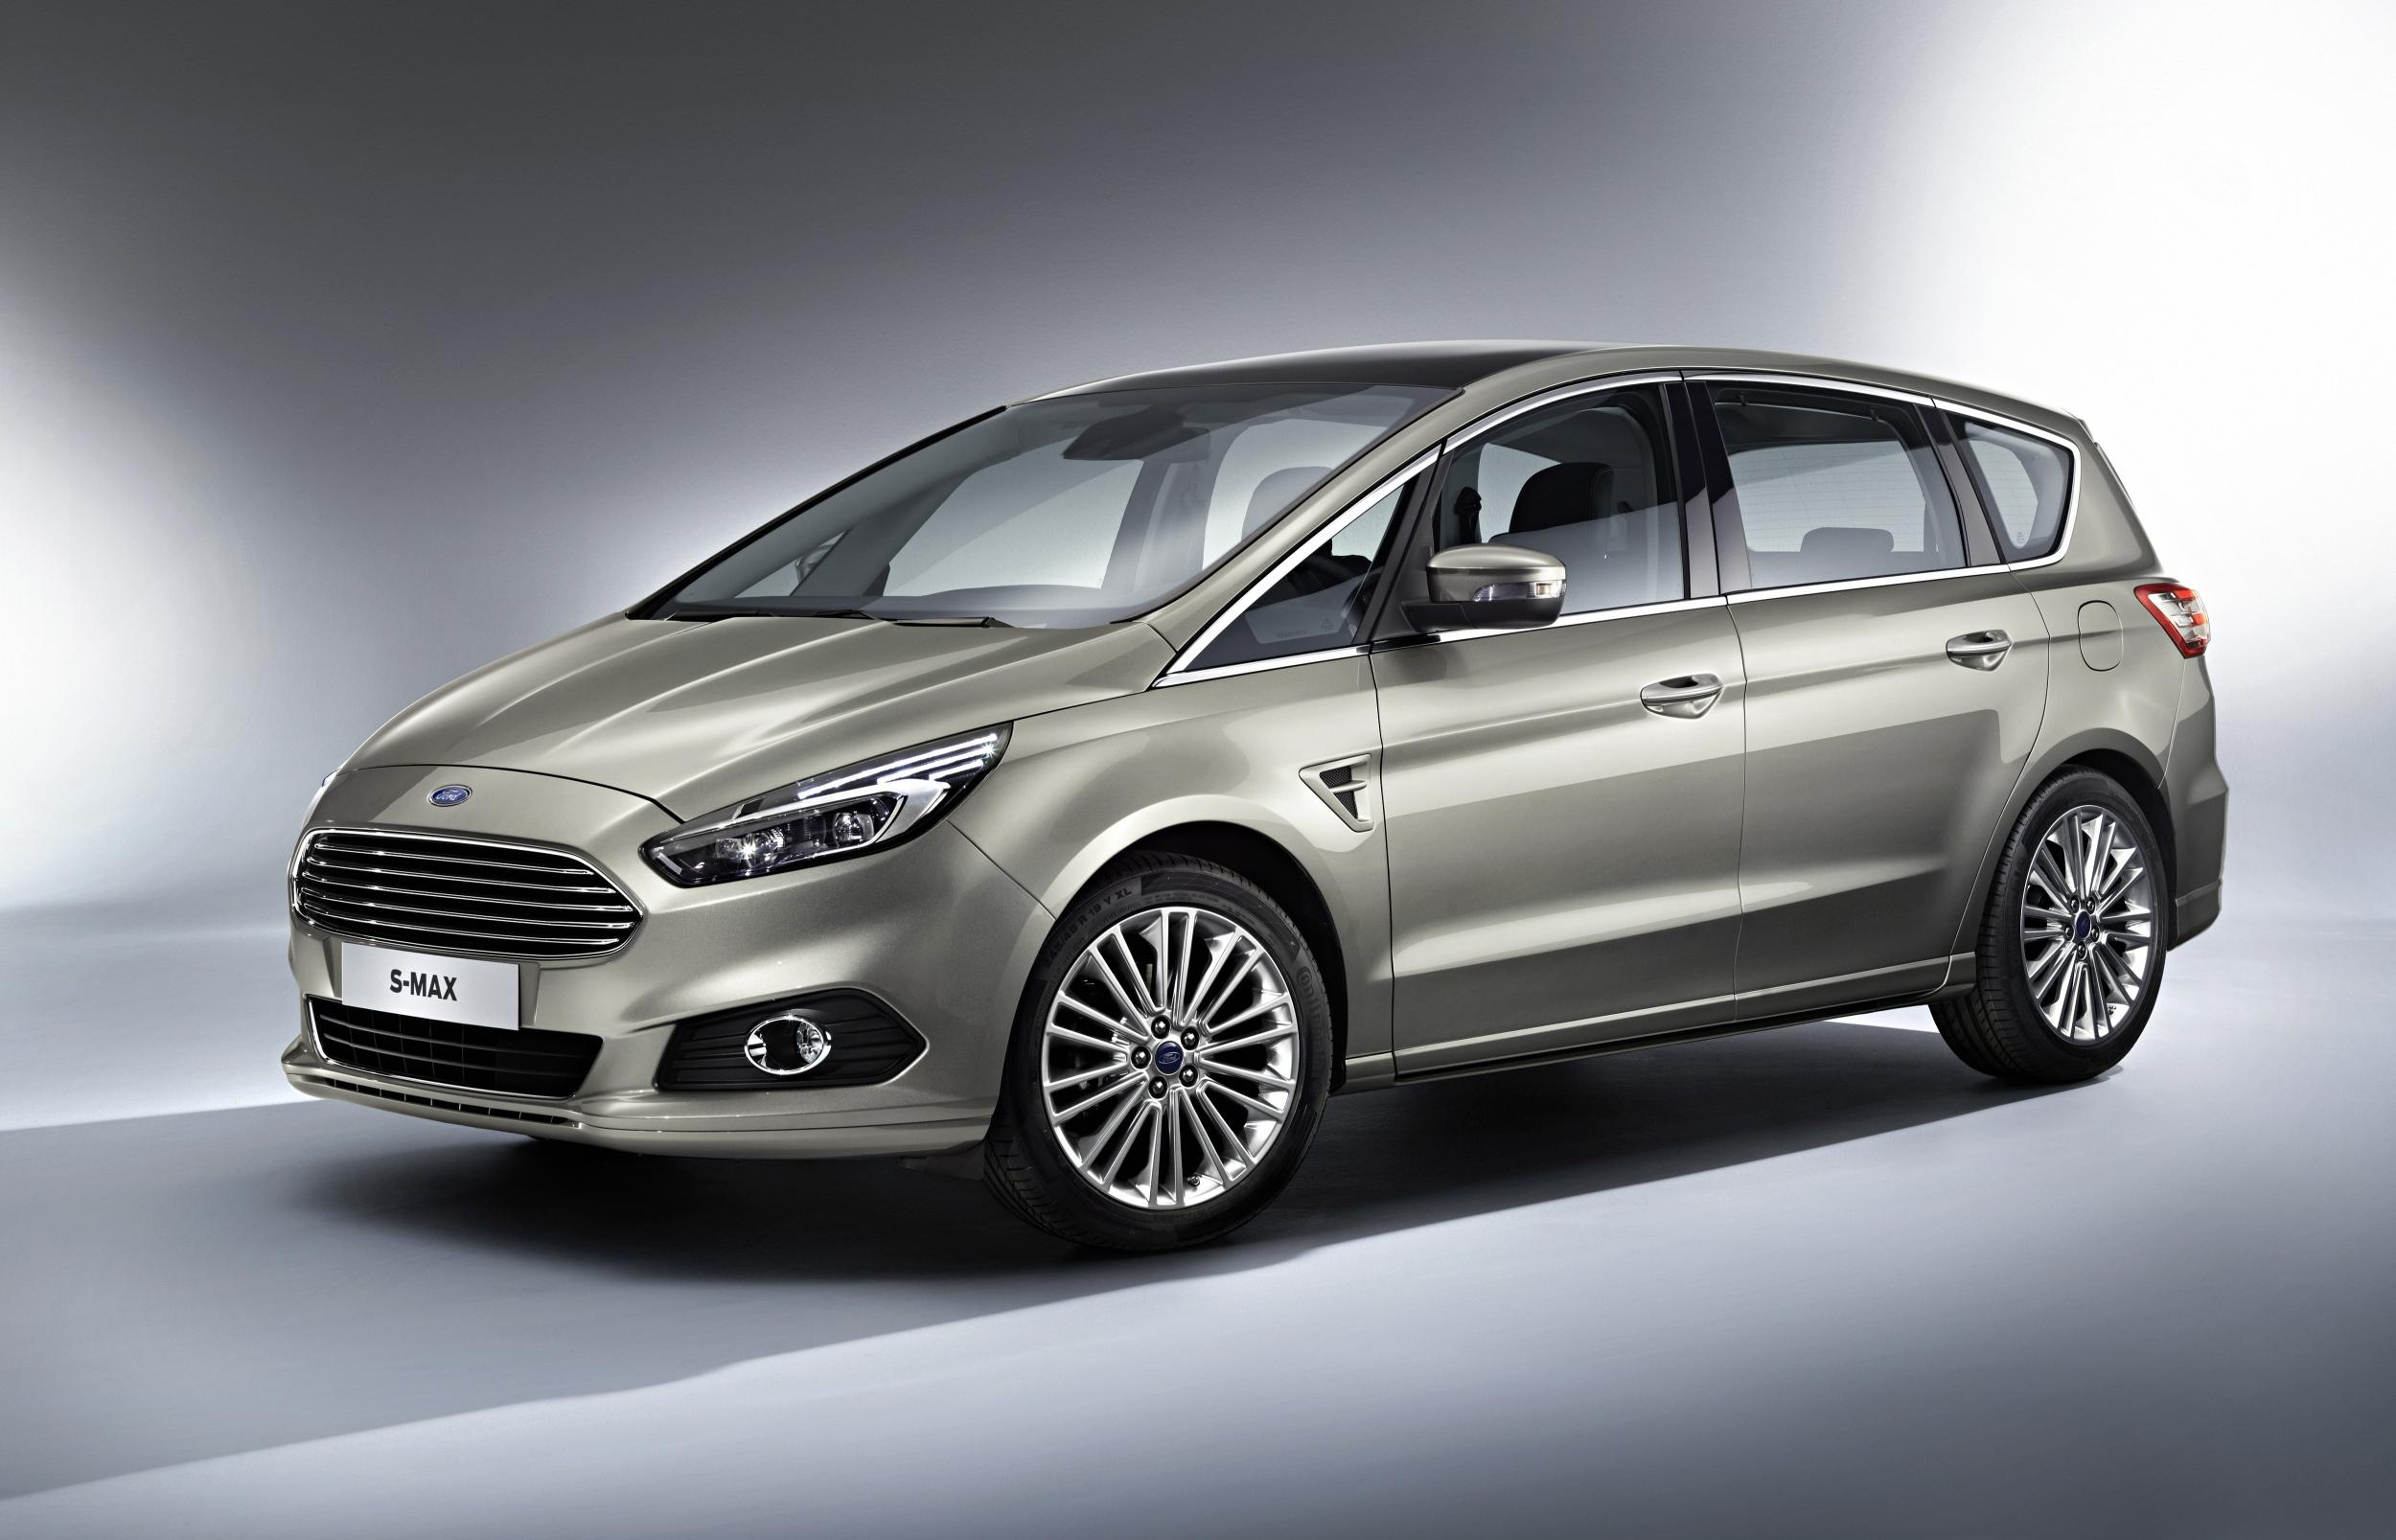 2015 ford s max detailed ahead of paris motor show debut autoevolution